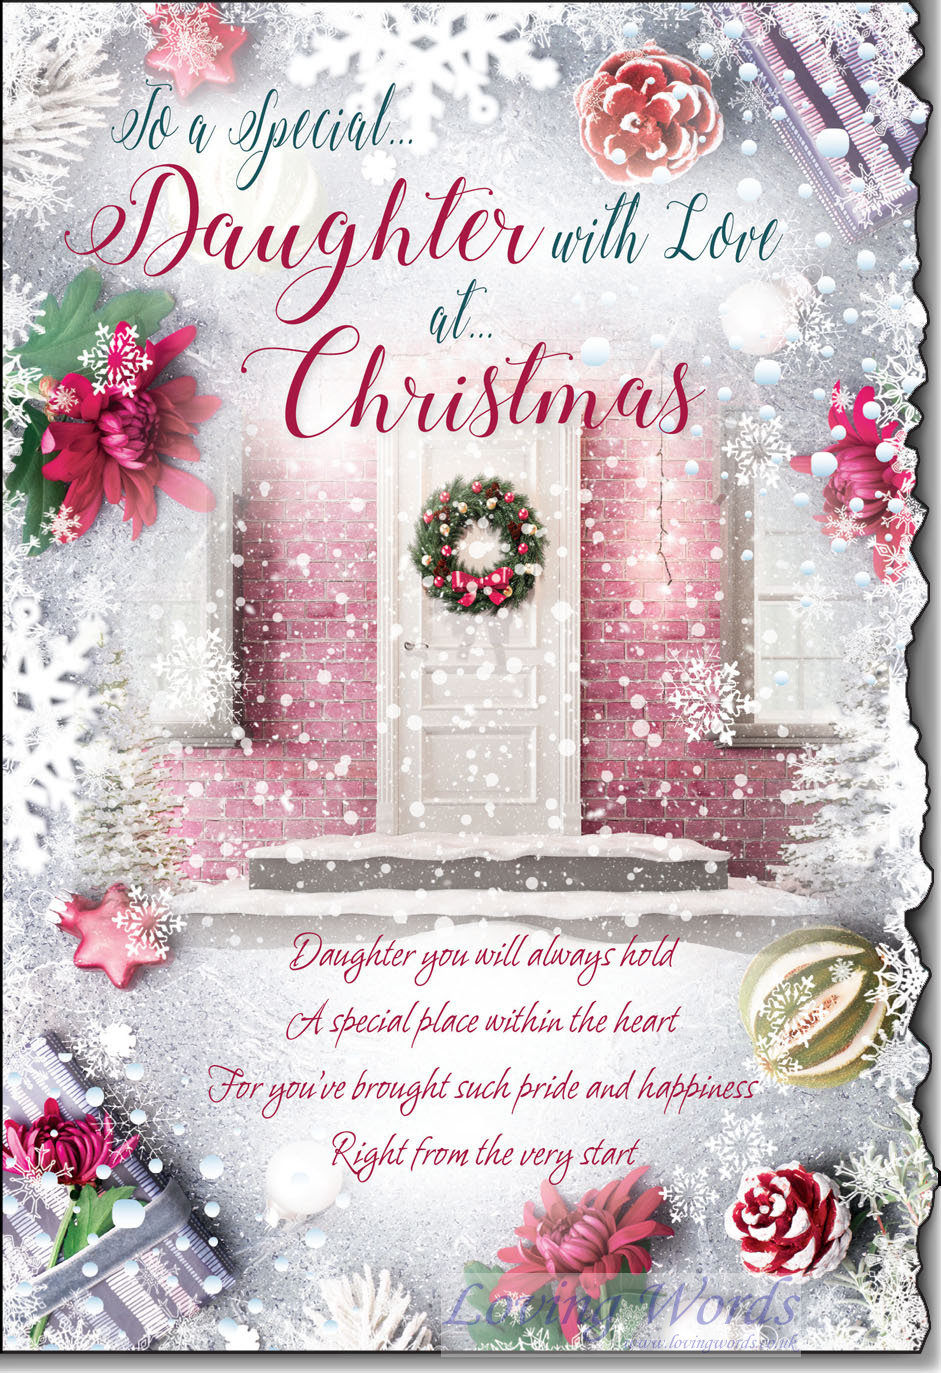 special daughter with love at christmas  greeting cards